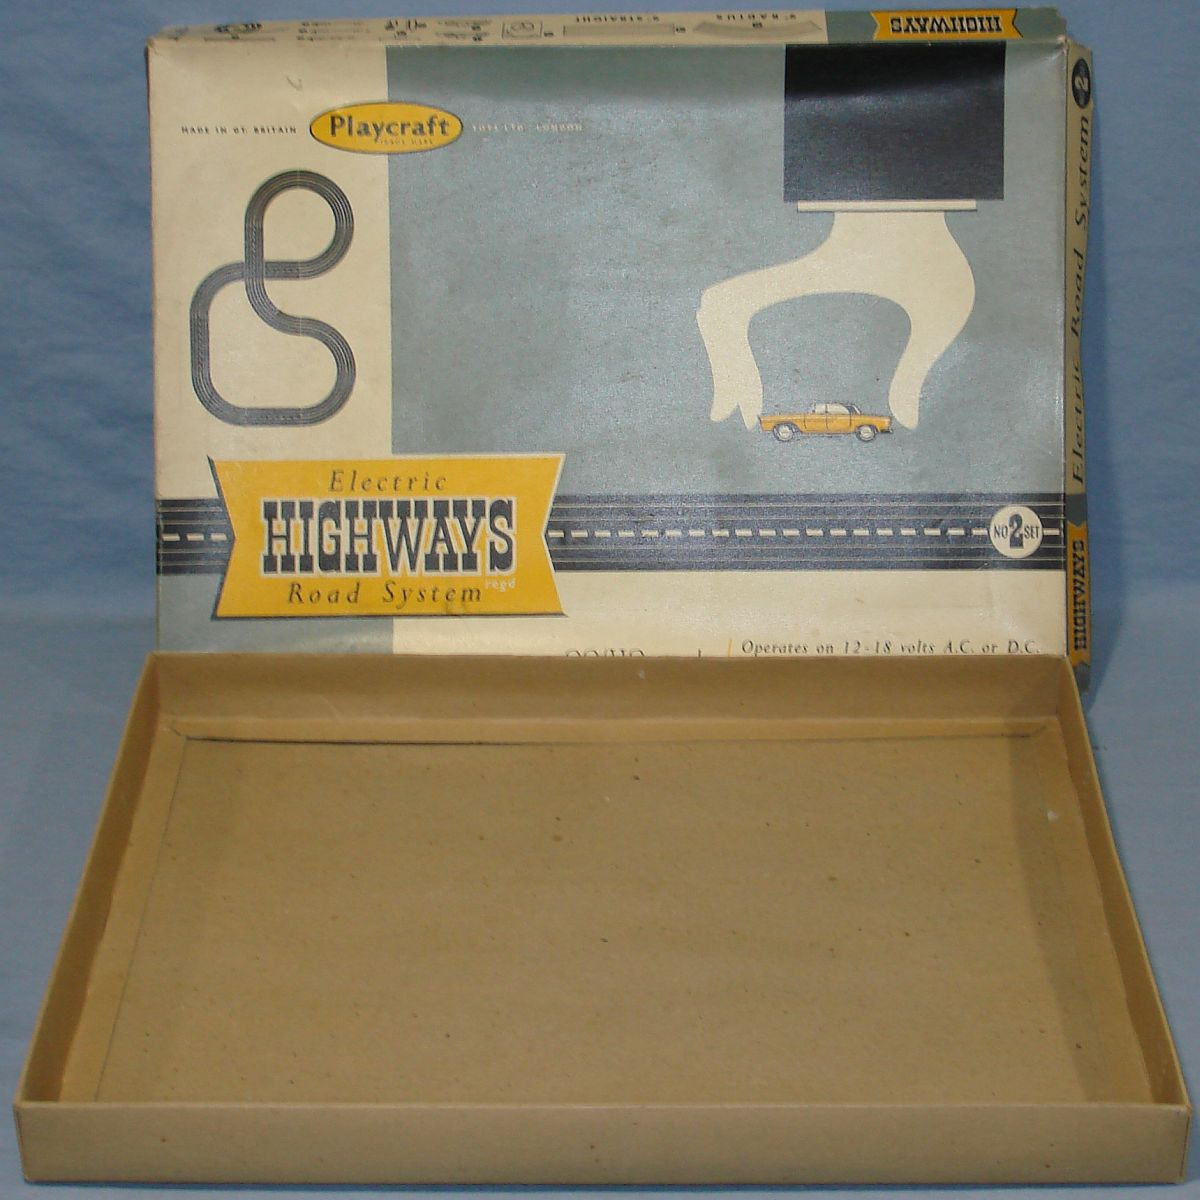 Playcraft Highways HO Scale Electric Road System Slot Car Racing Track Set #2 Box Lid & Bottom